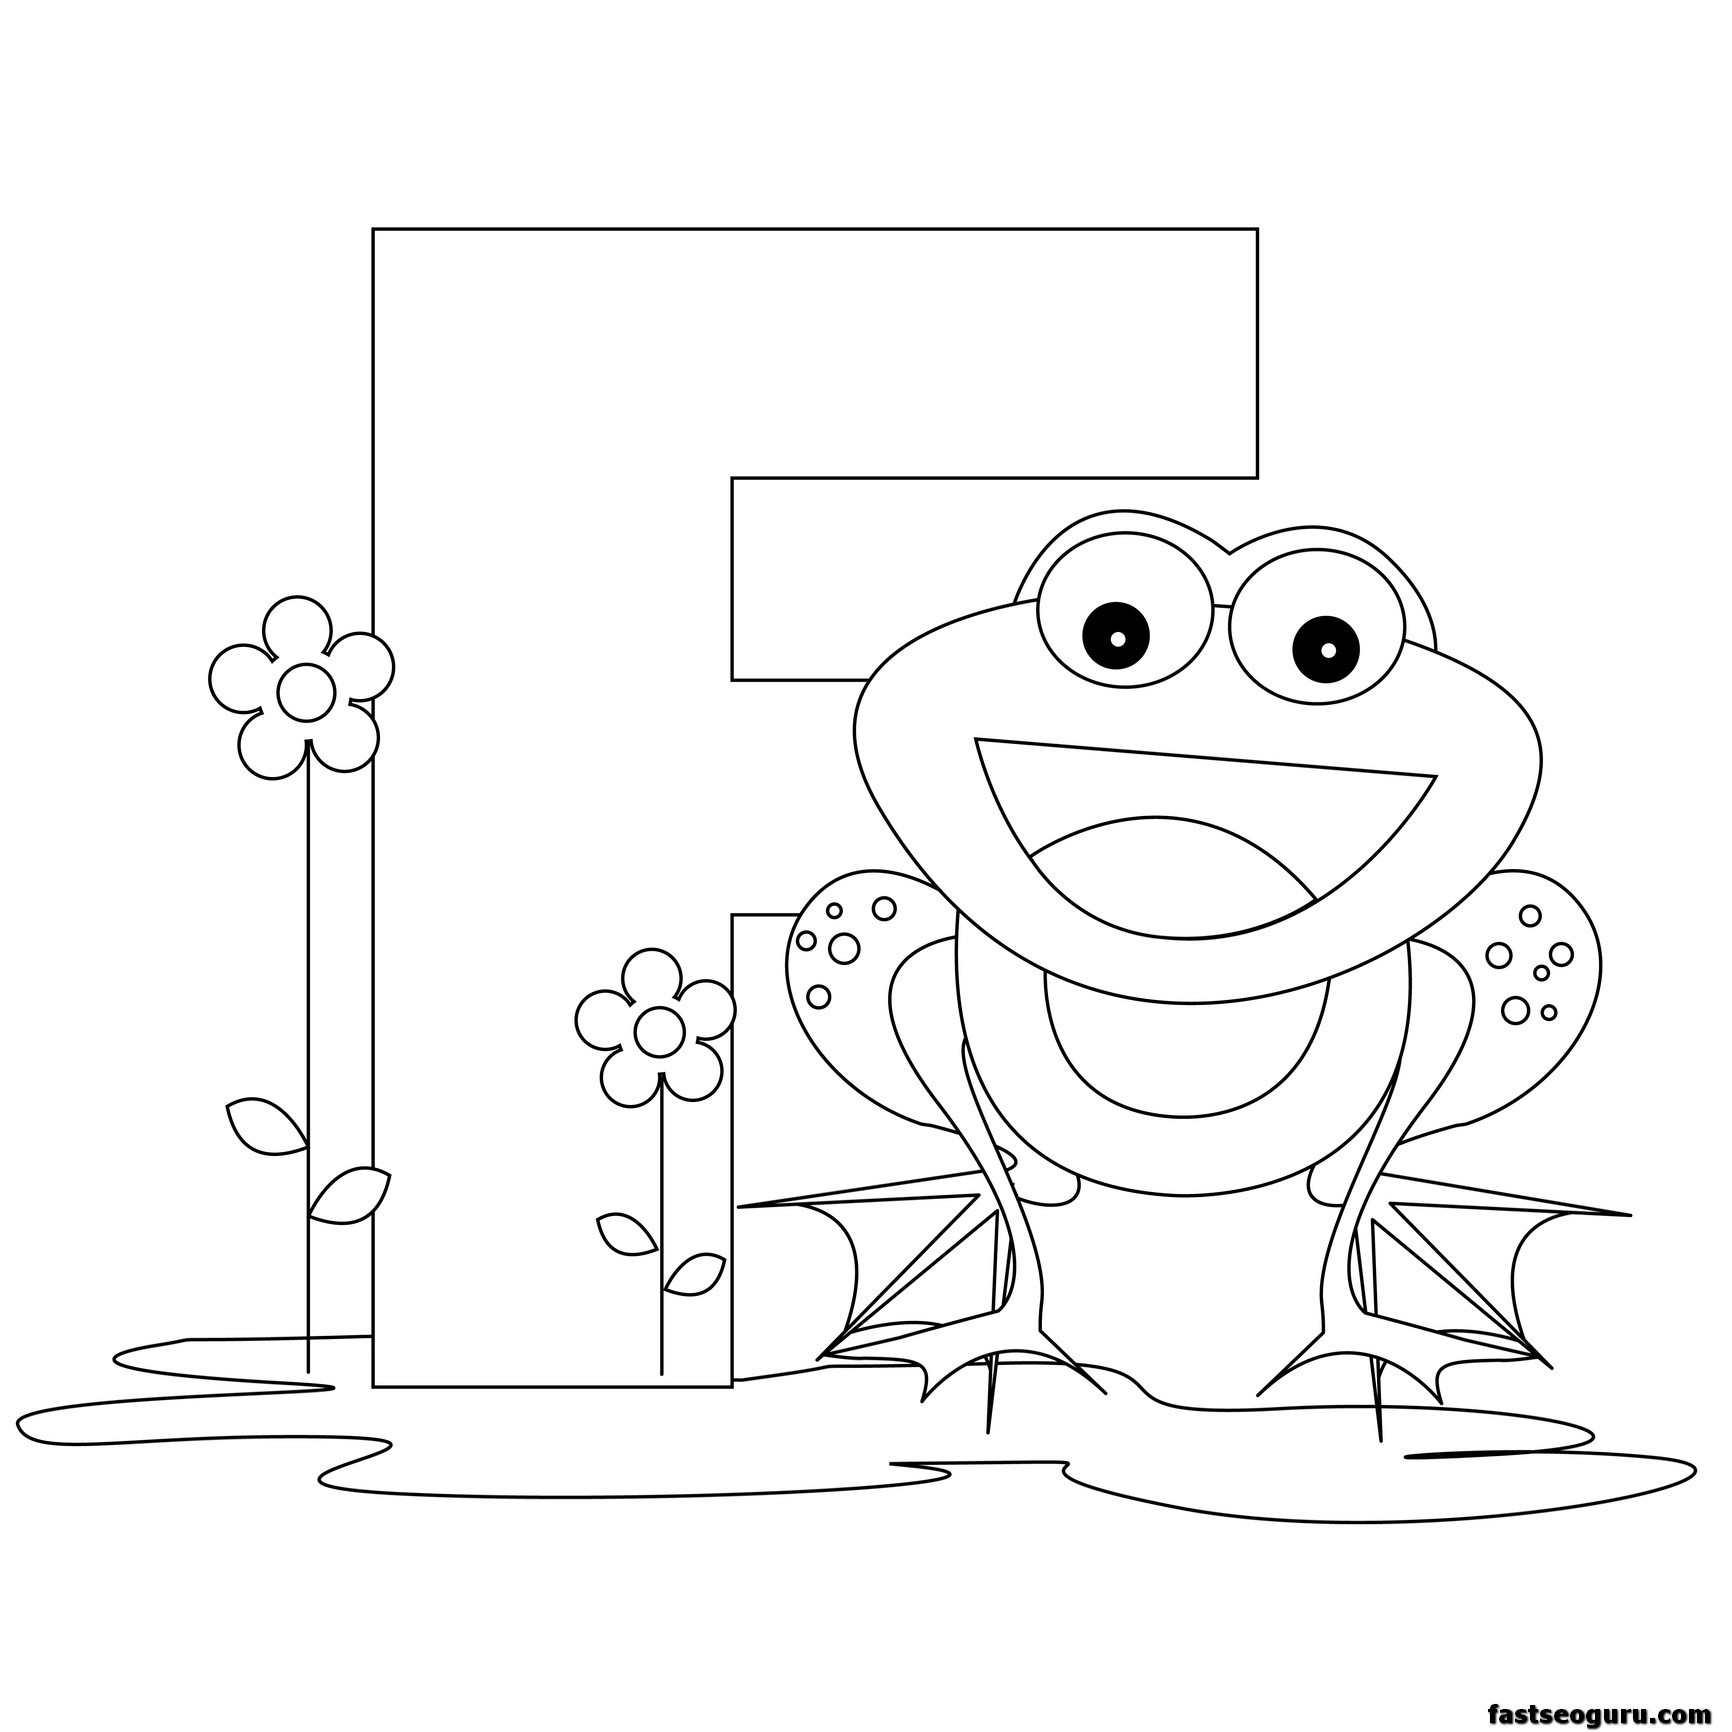 Printable Animal Alphabet Worksheets Letter F For Frog